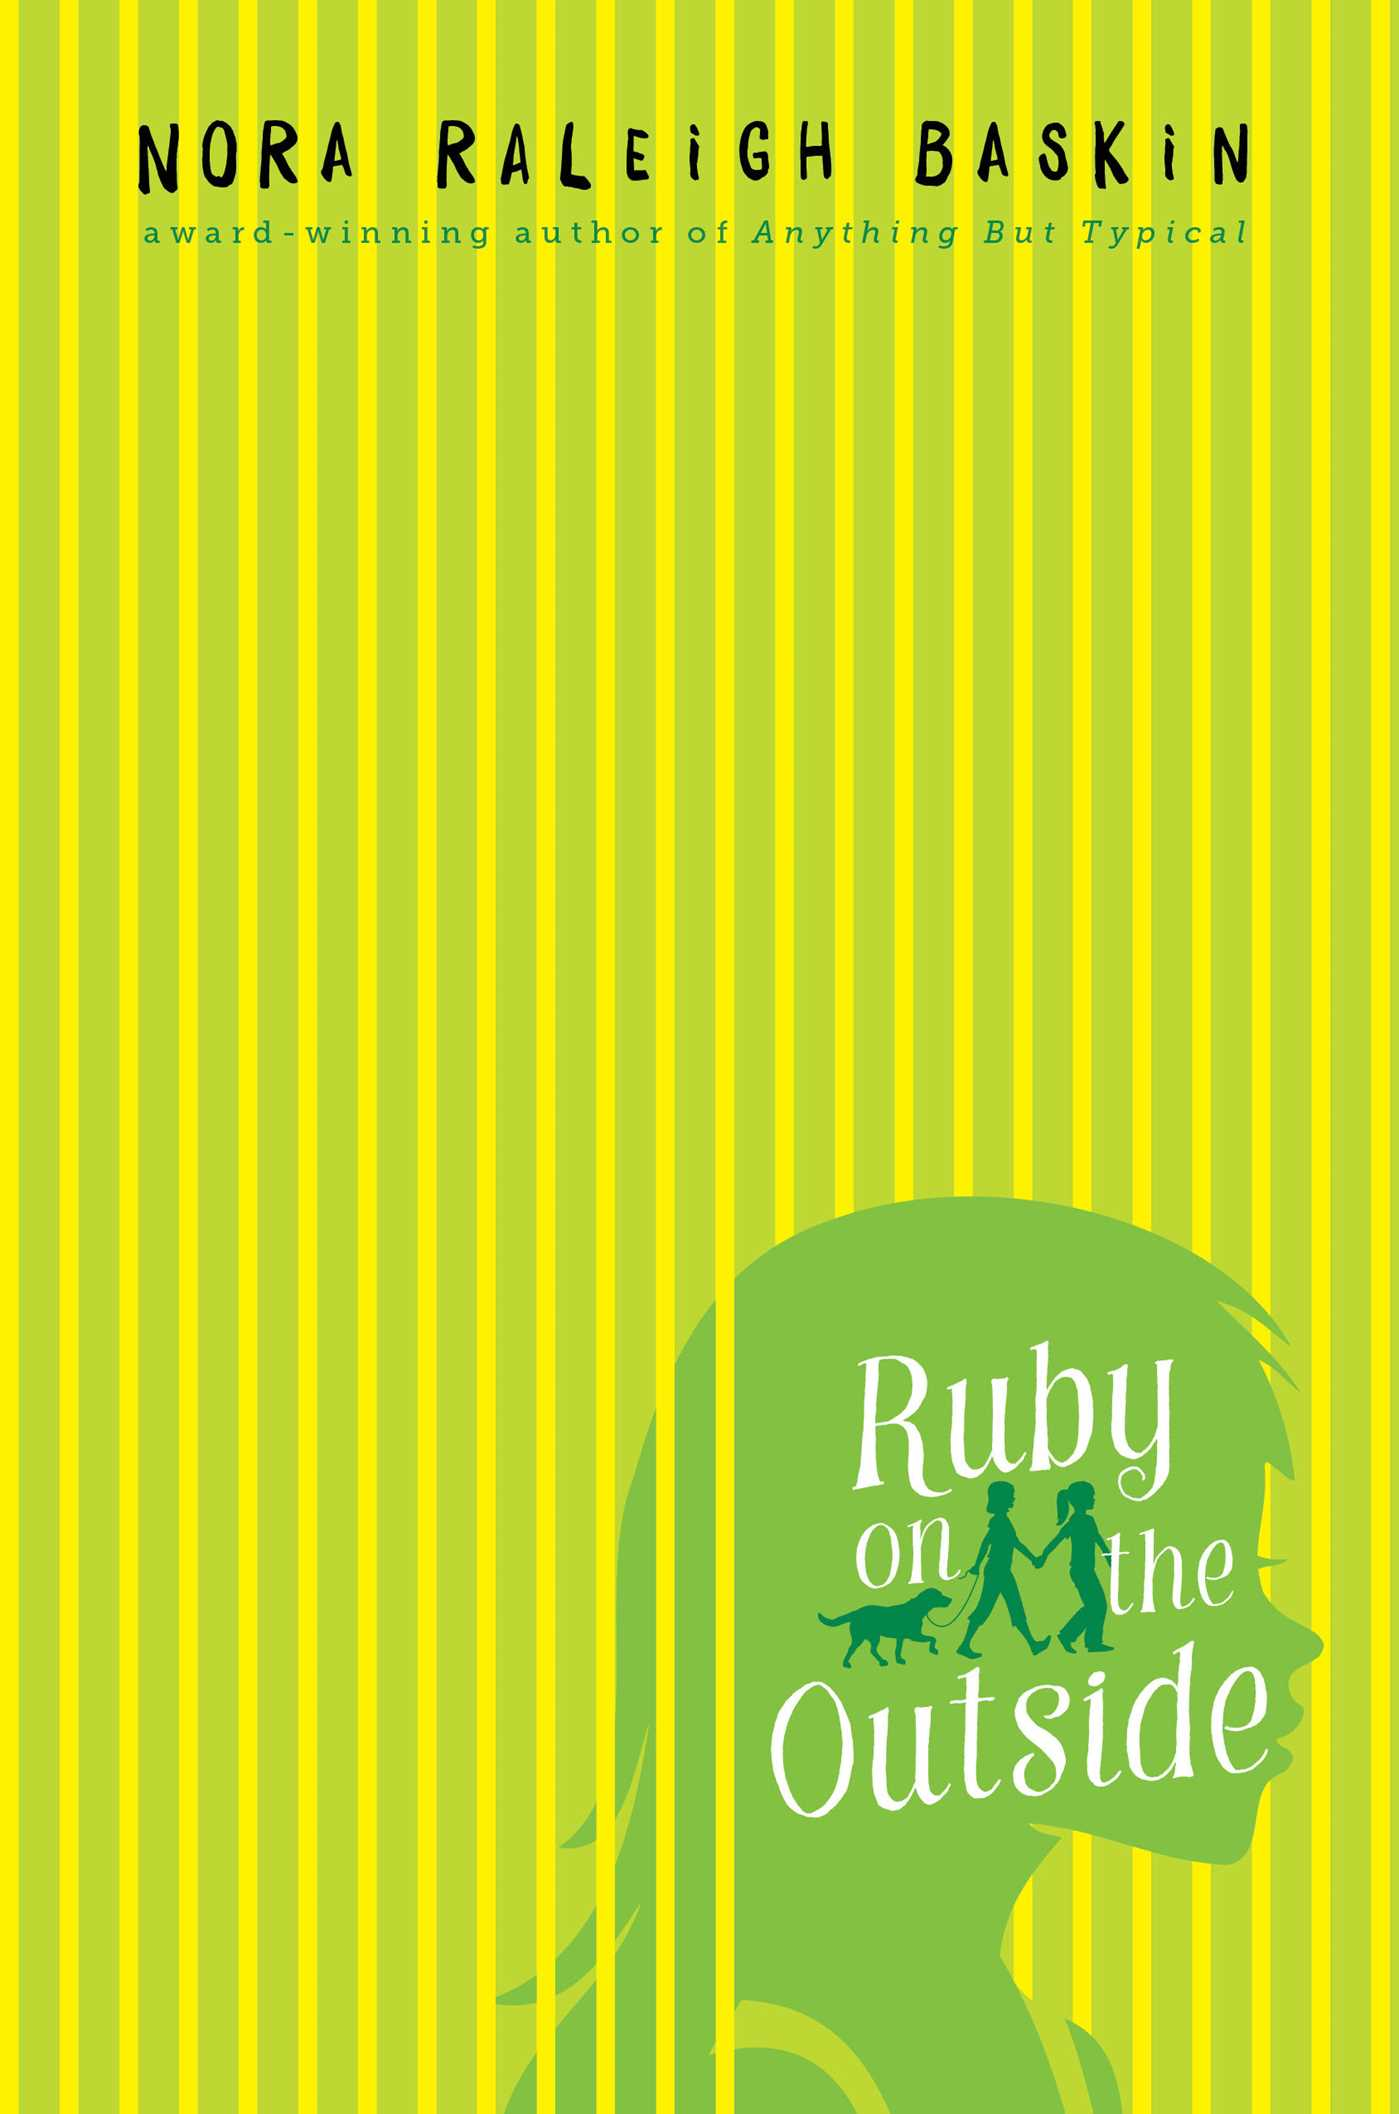 Ruby on the outside 9781442485037 hr